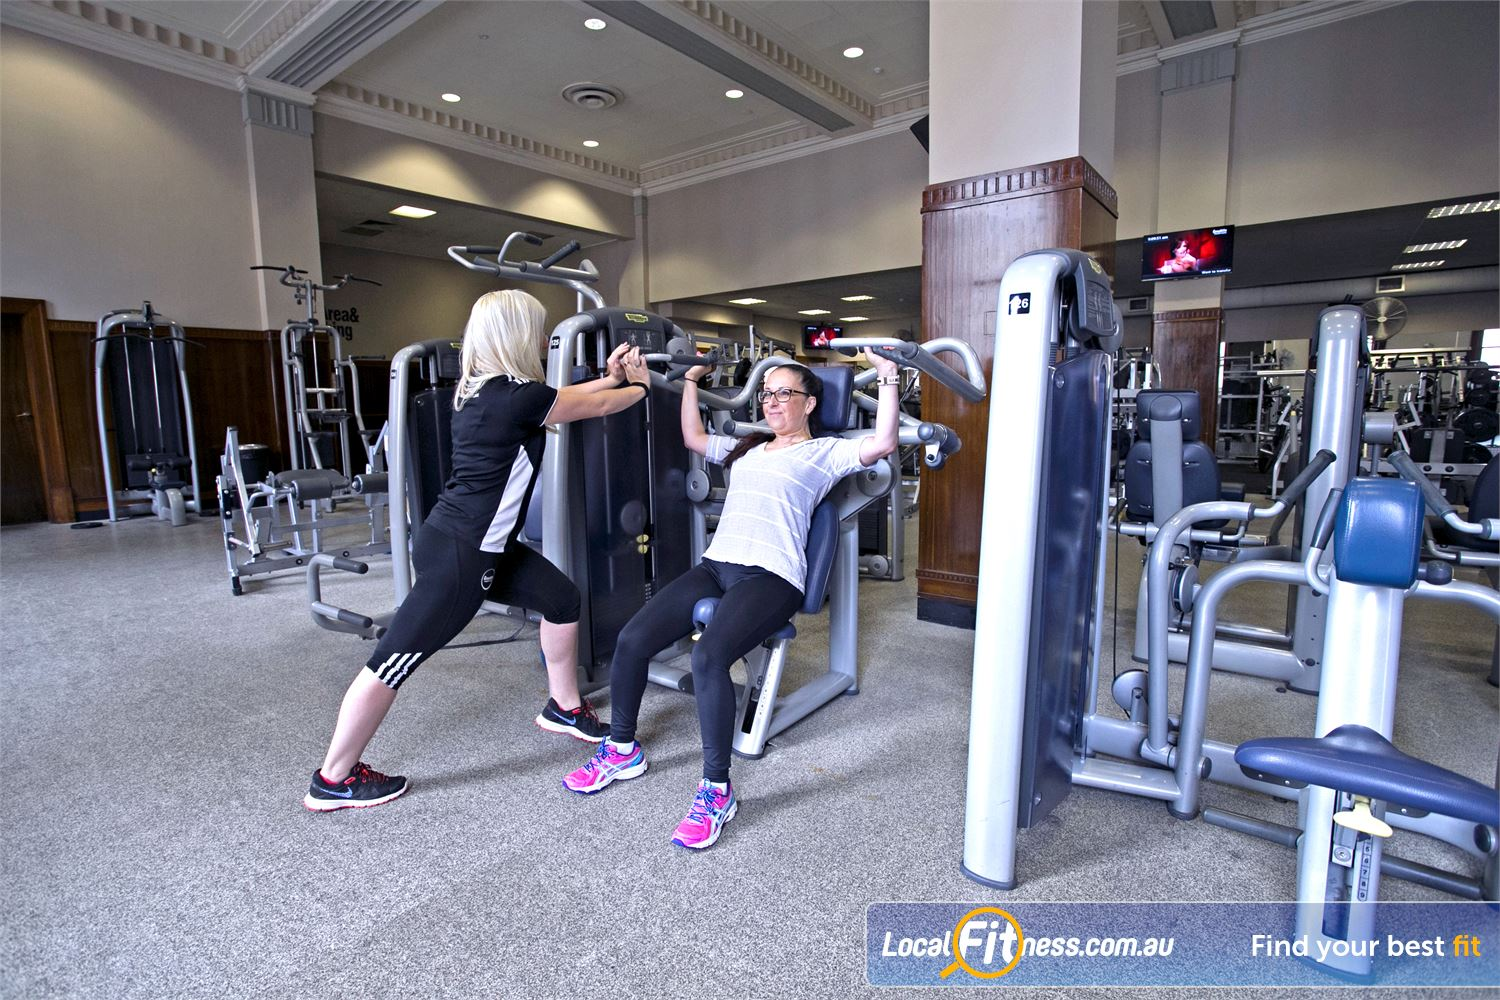 Goodlife Health Clubs Adelaide City Adelaide Get the right advice on training from our Adelaide gym team.